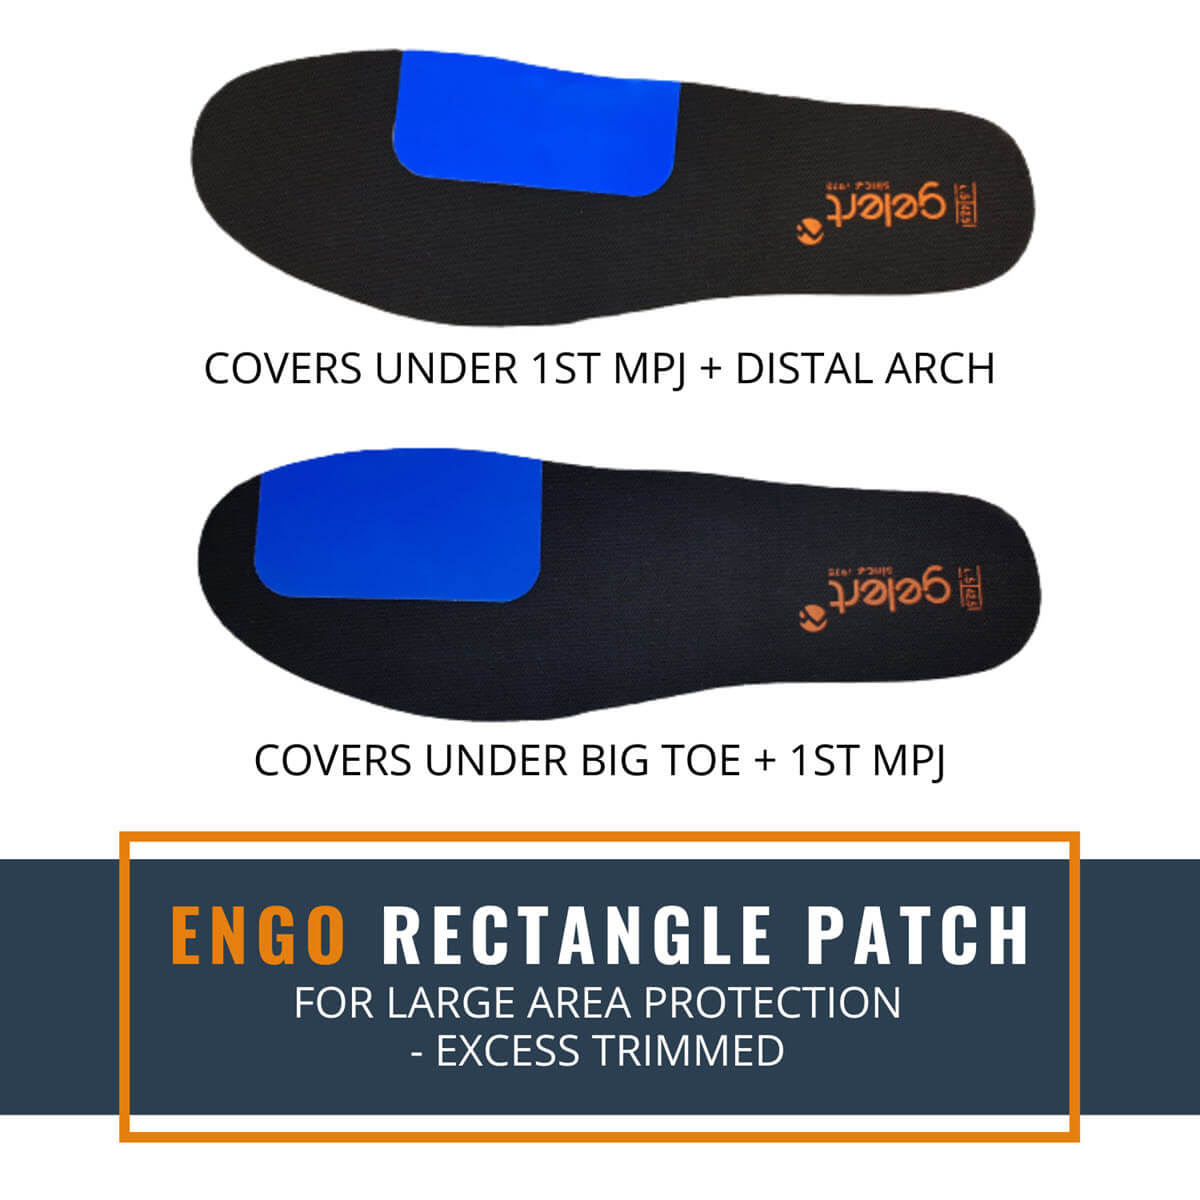 ENGO Blister Patches Rectangle Pack rectangle patch applied to the insole for large area coverage